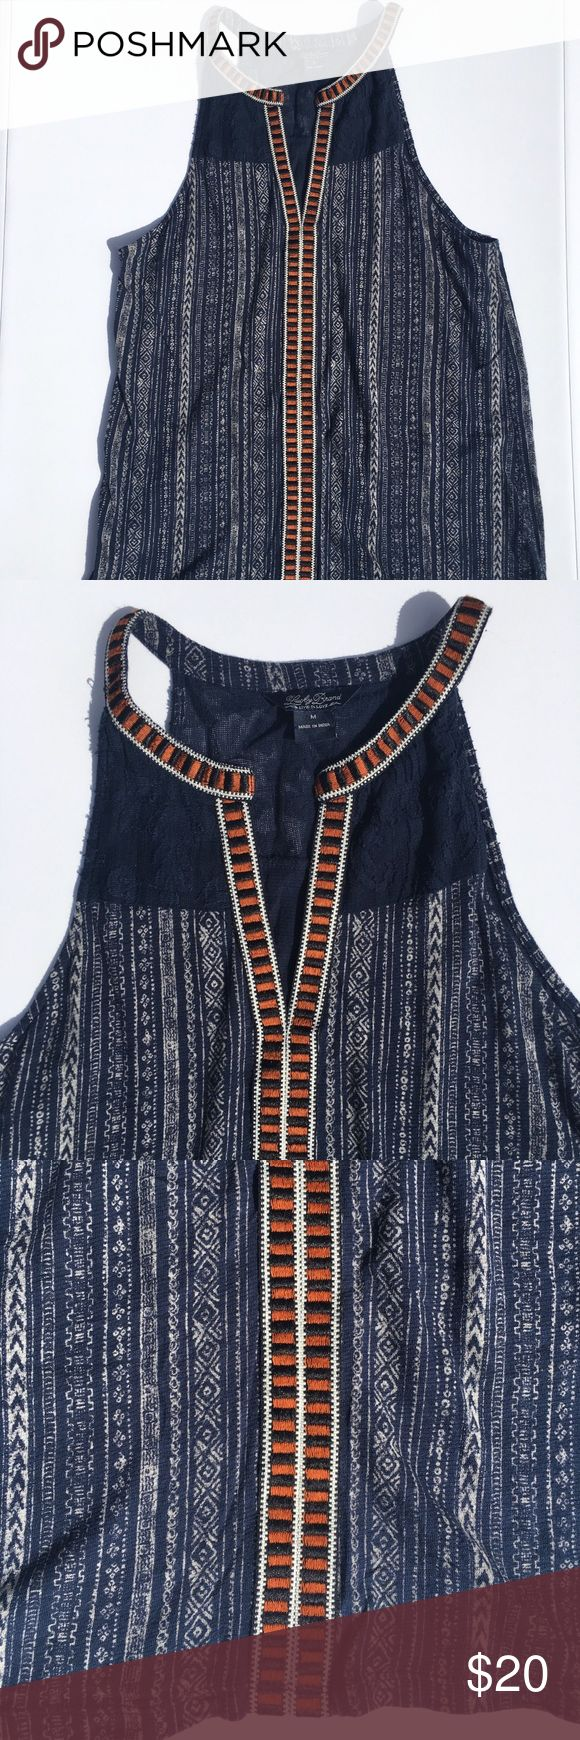 Lucky Brand top! Beautiful Lucky Brand top with boho design. Size M there are a few loose strings, but not noticeable when worn! Lucky Brand Tops Tank Tops